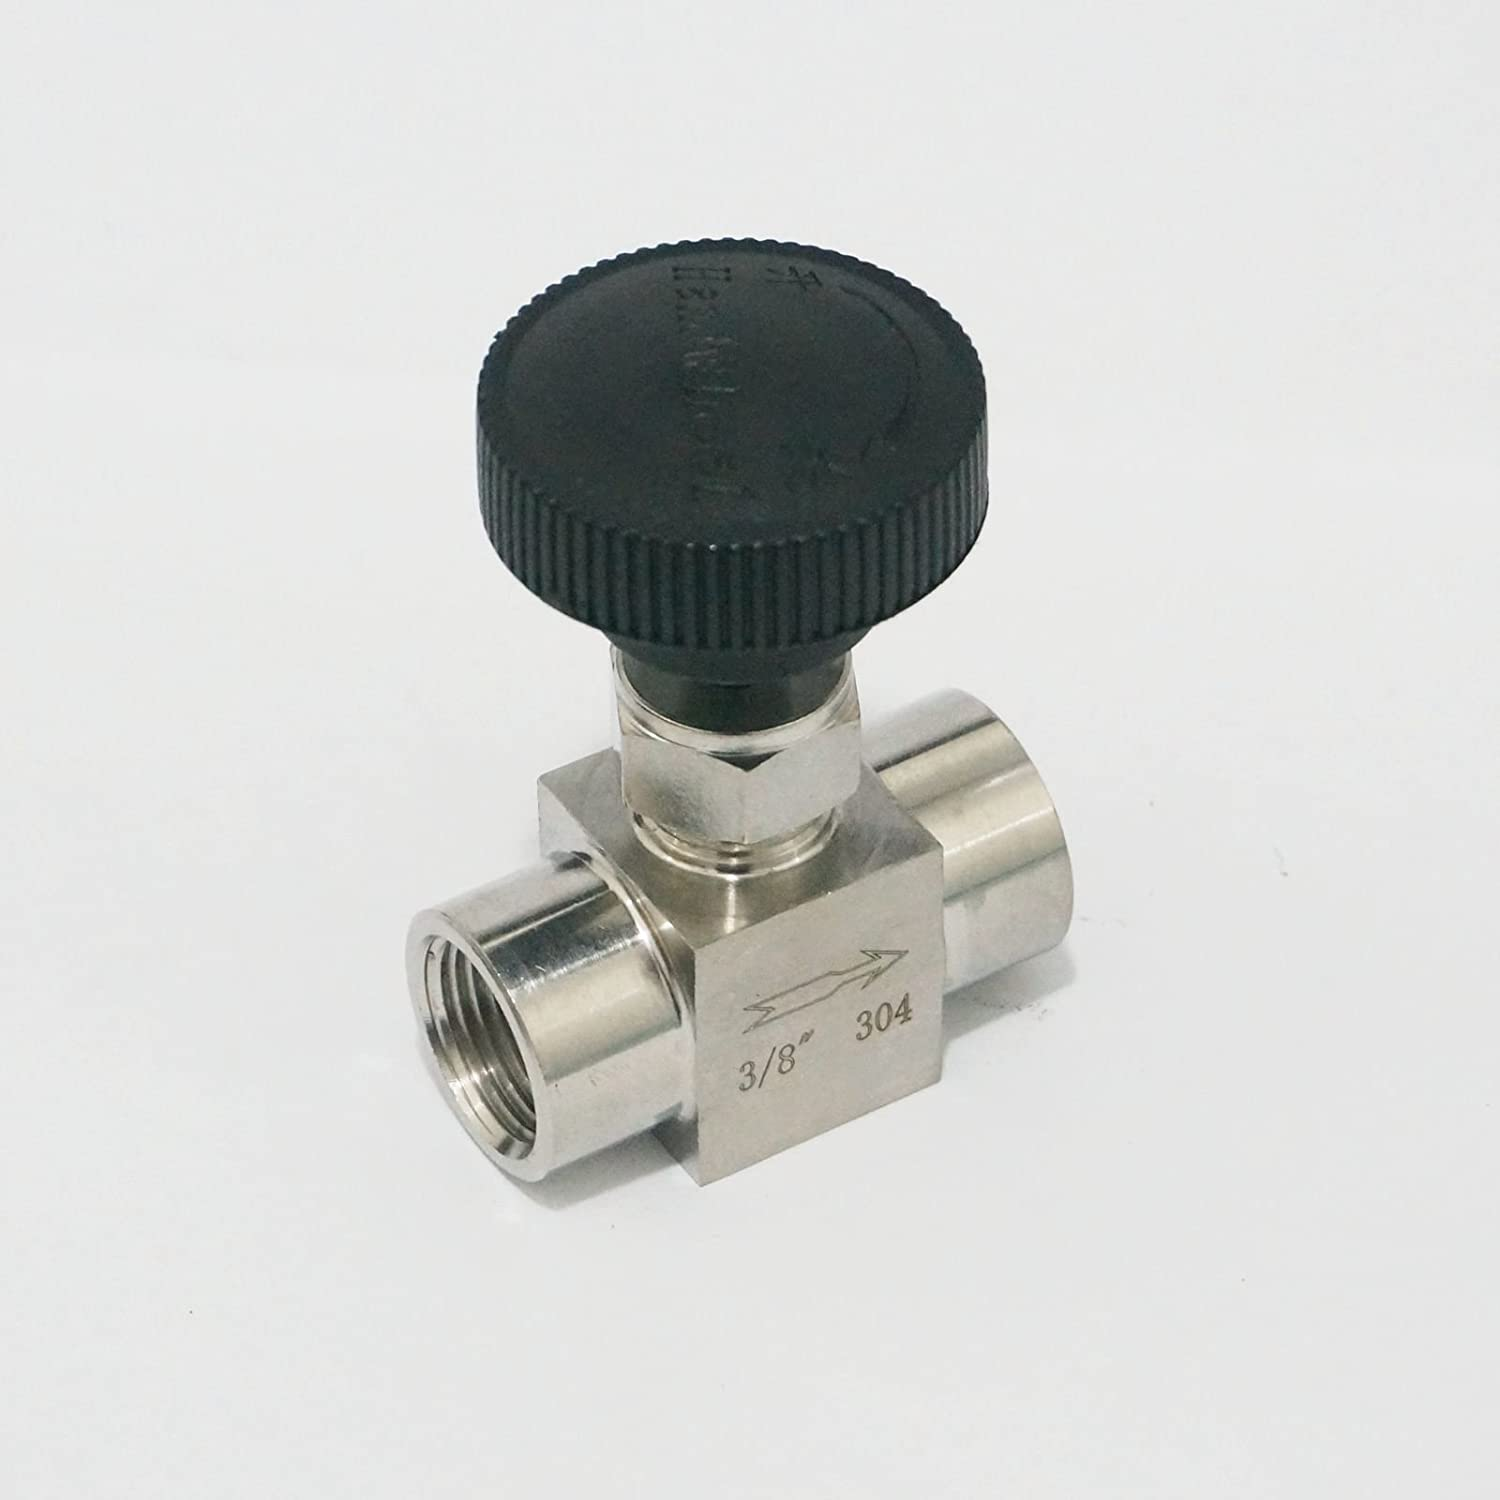 Sorekarain 3//8 BSP Equal female Thread 304 Stainless Steel shut off valve Needle Valve 915 PSI